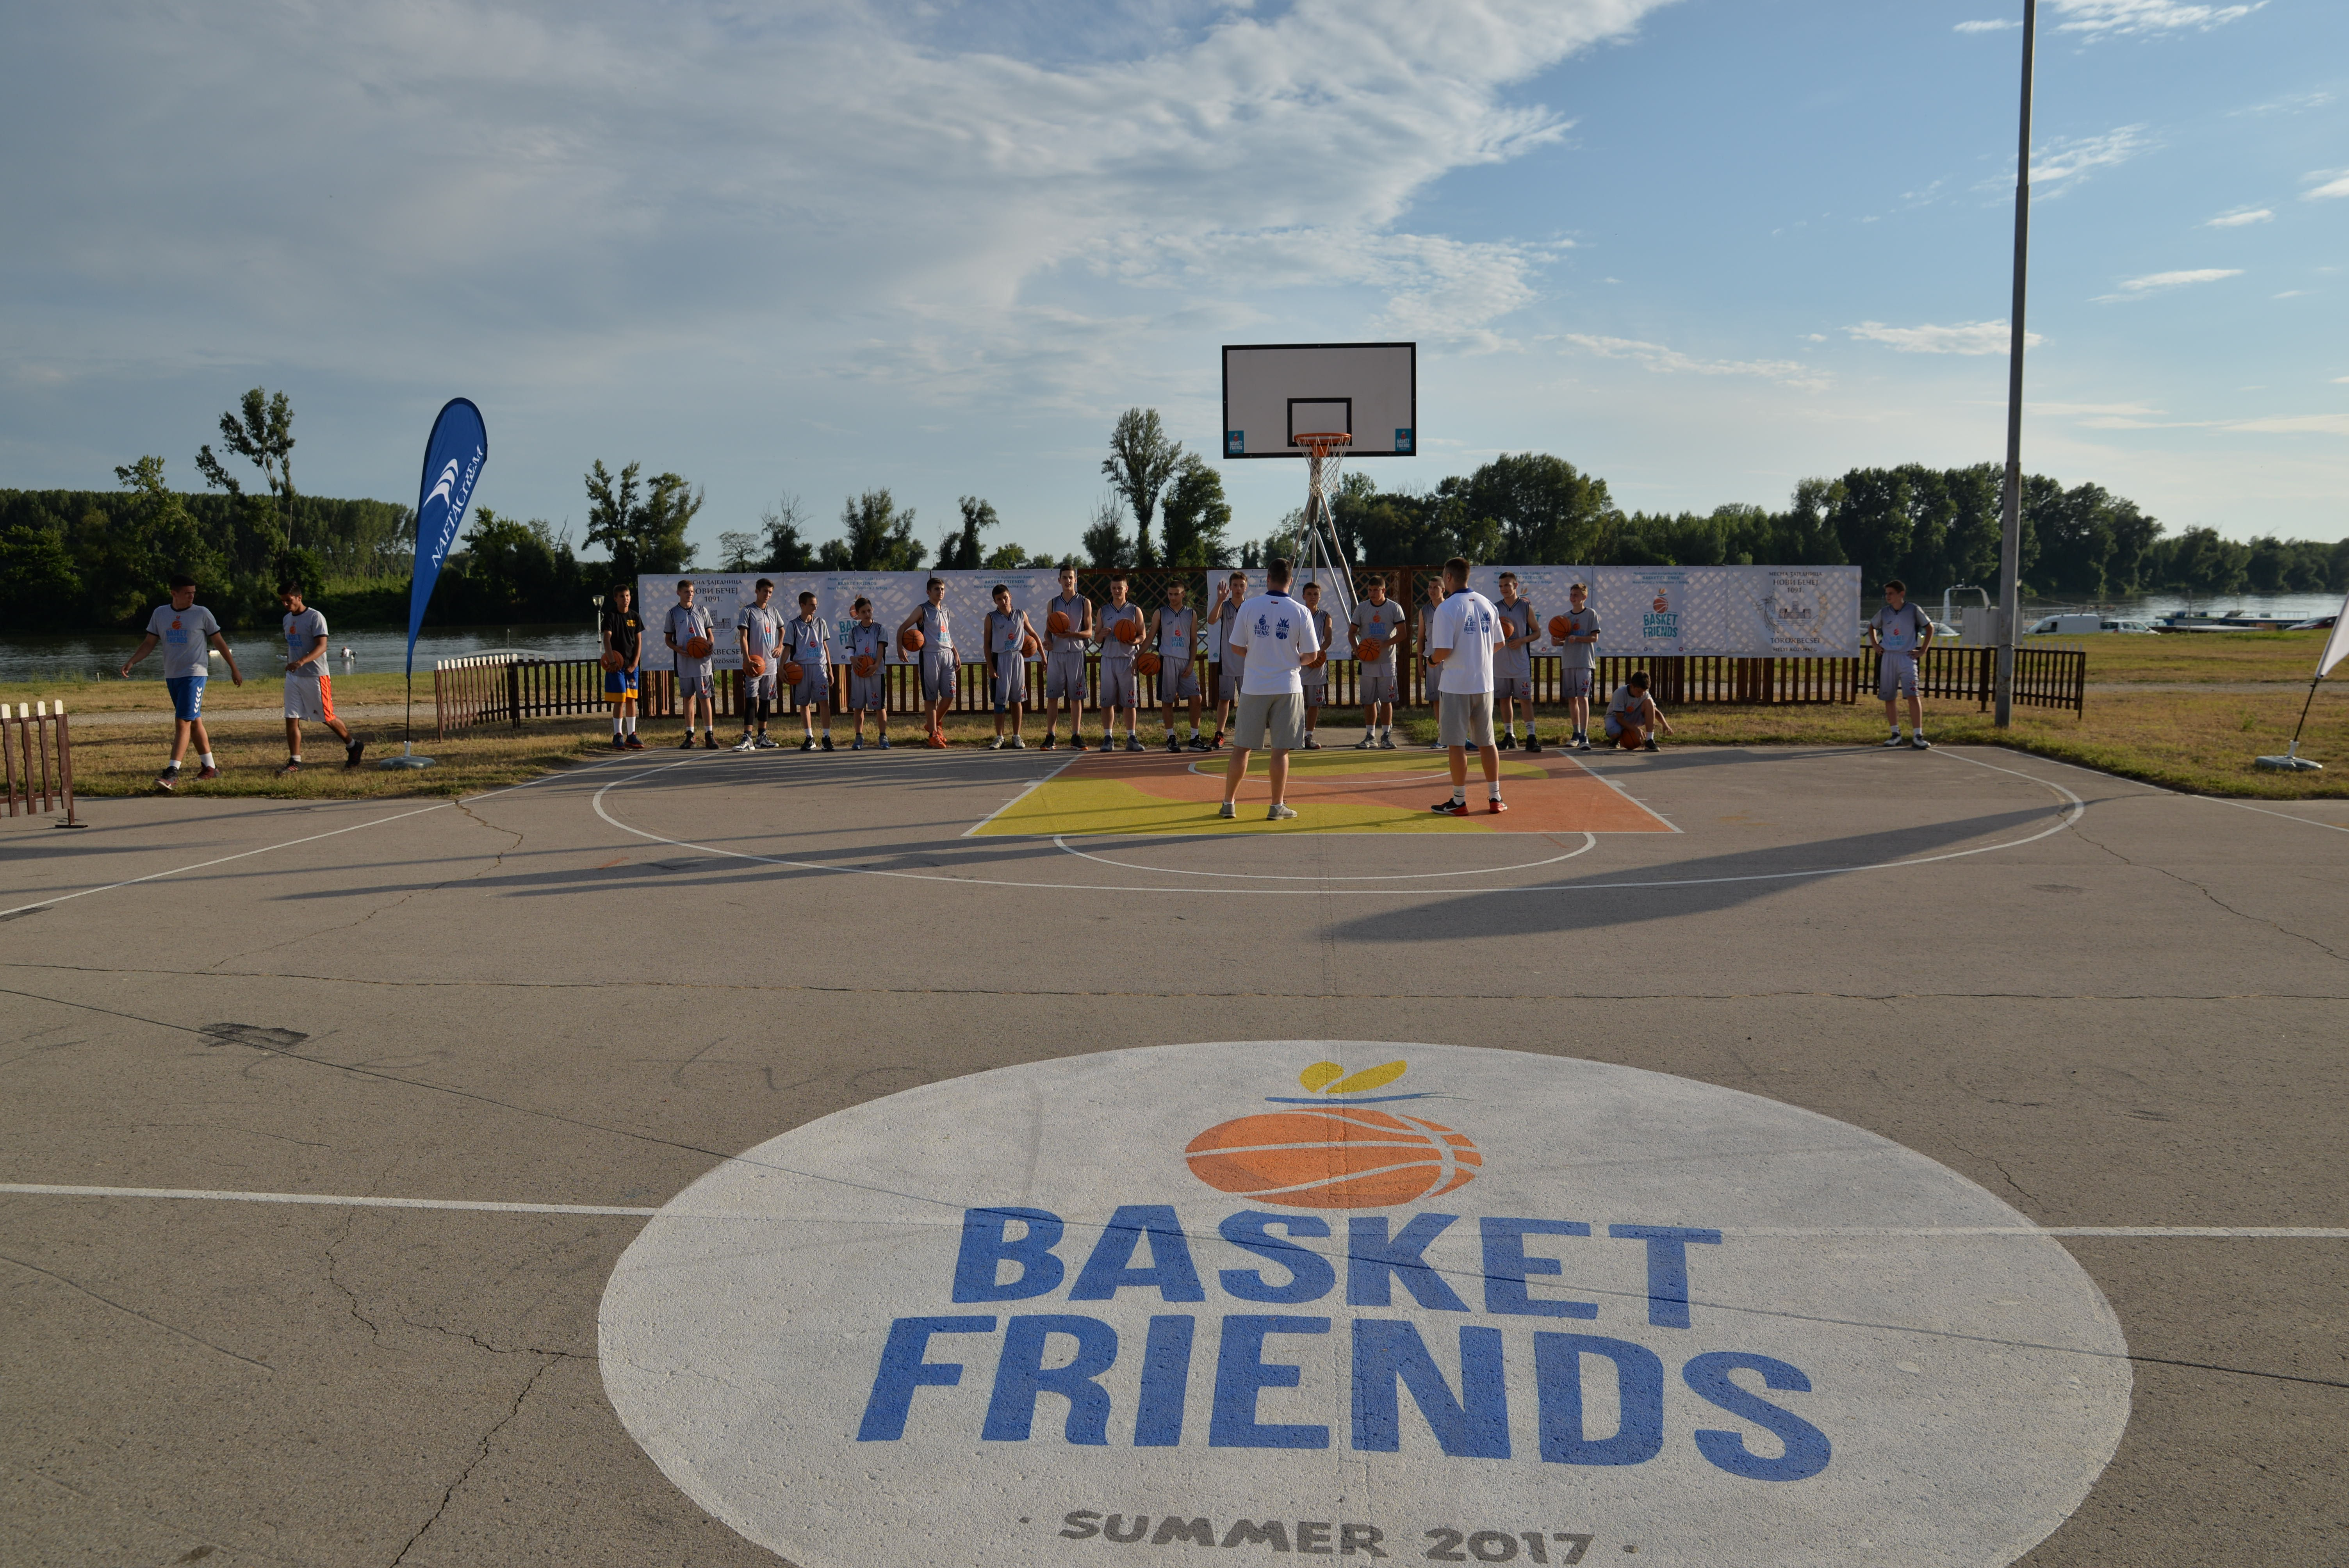 Basketfriends 2017. - outdoor training by the river